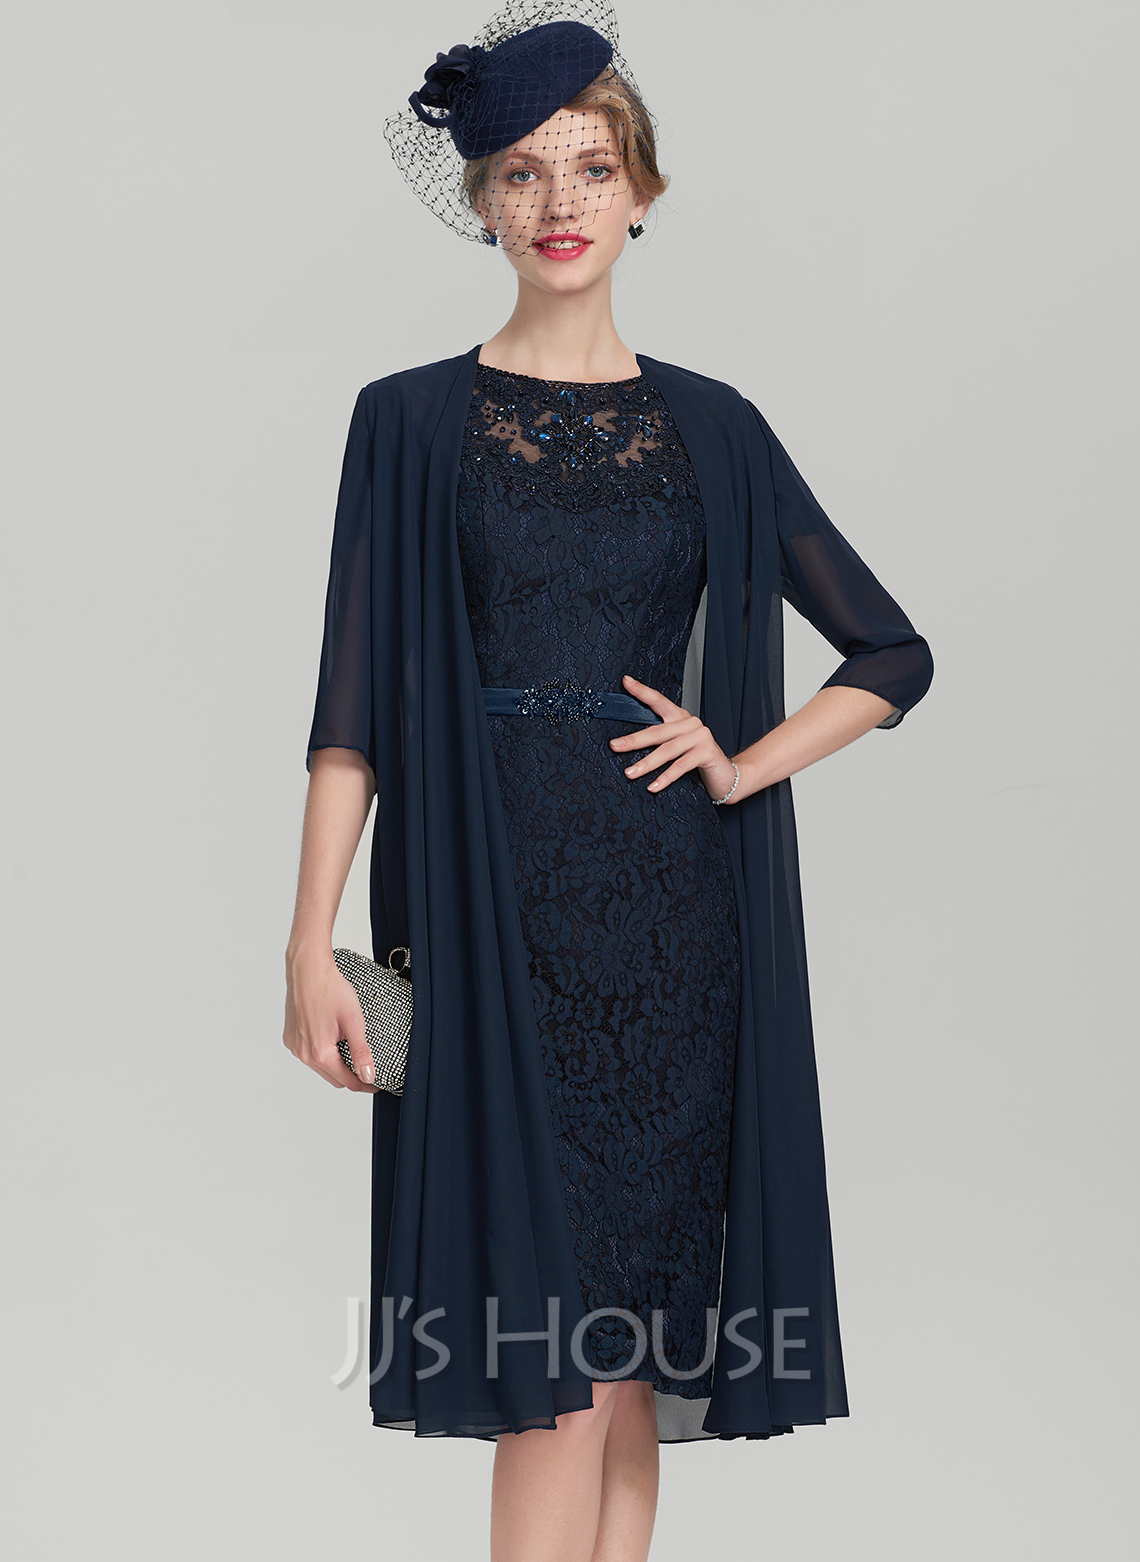 Sheath/Column Scoop Neck Knee-Length Charmeuse Lace Mother of the Bride Dress